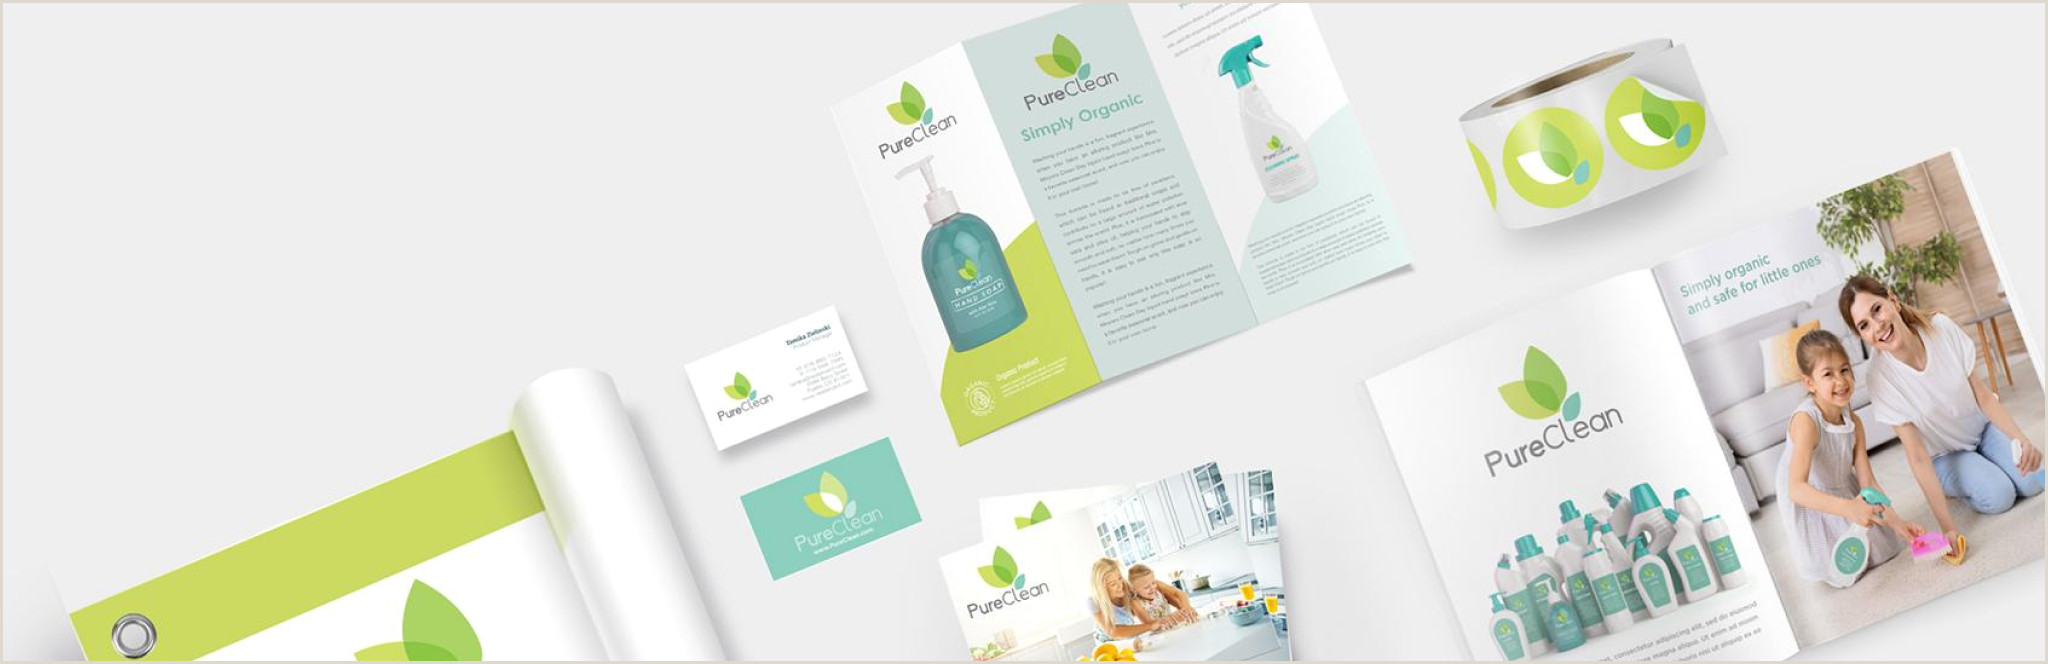 Cheap Online Business Cards Printplace High Quality Line Printing Services